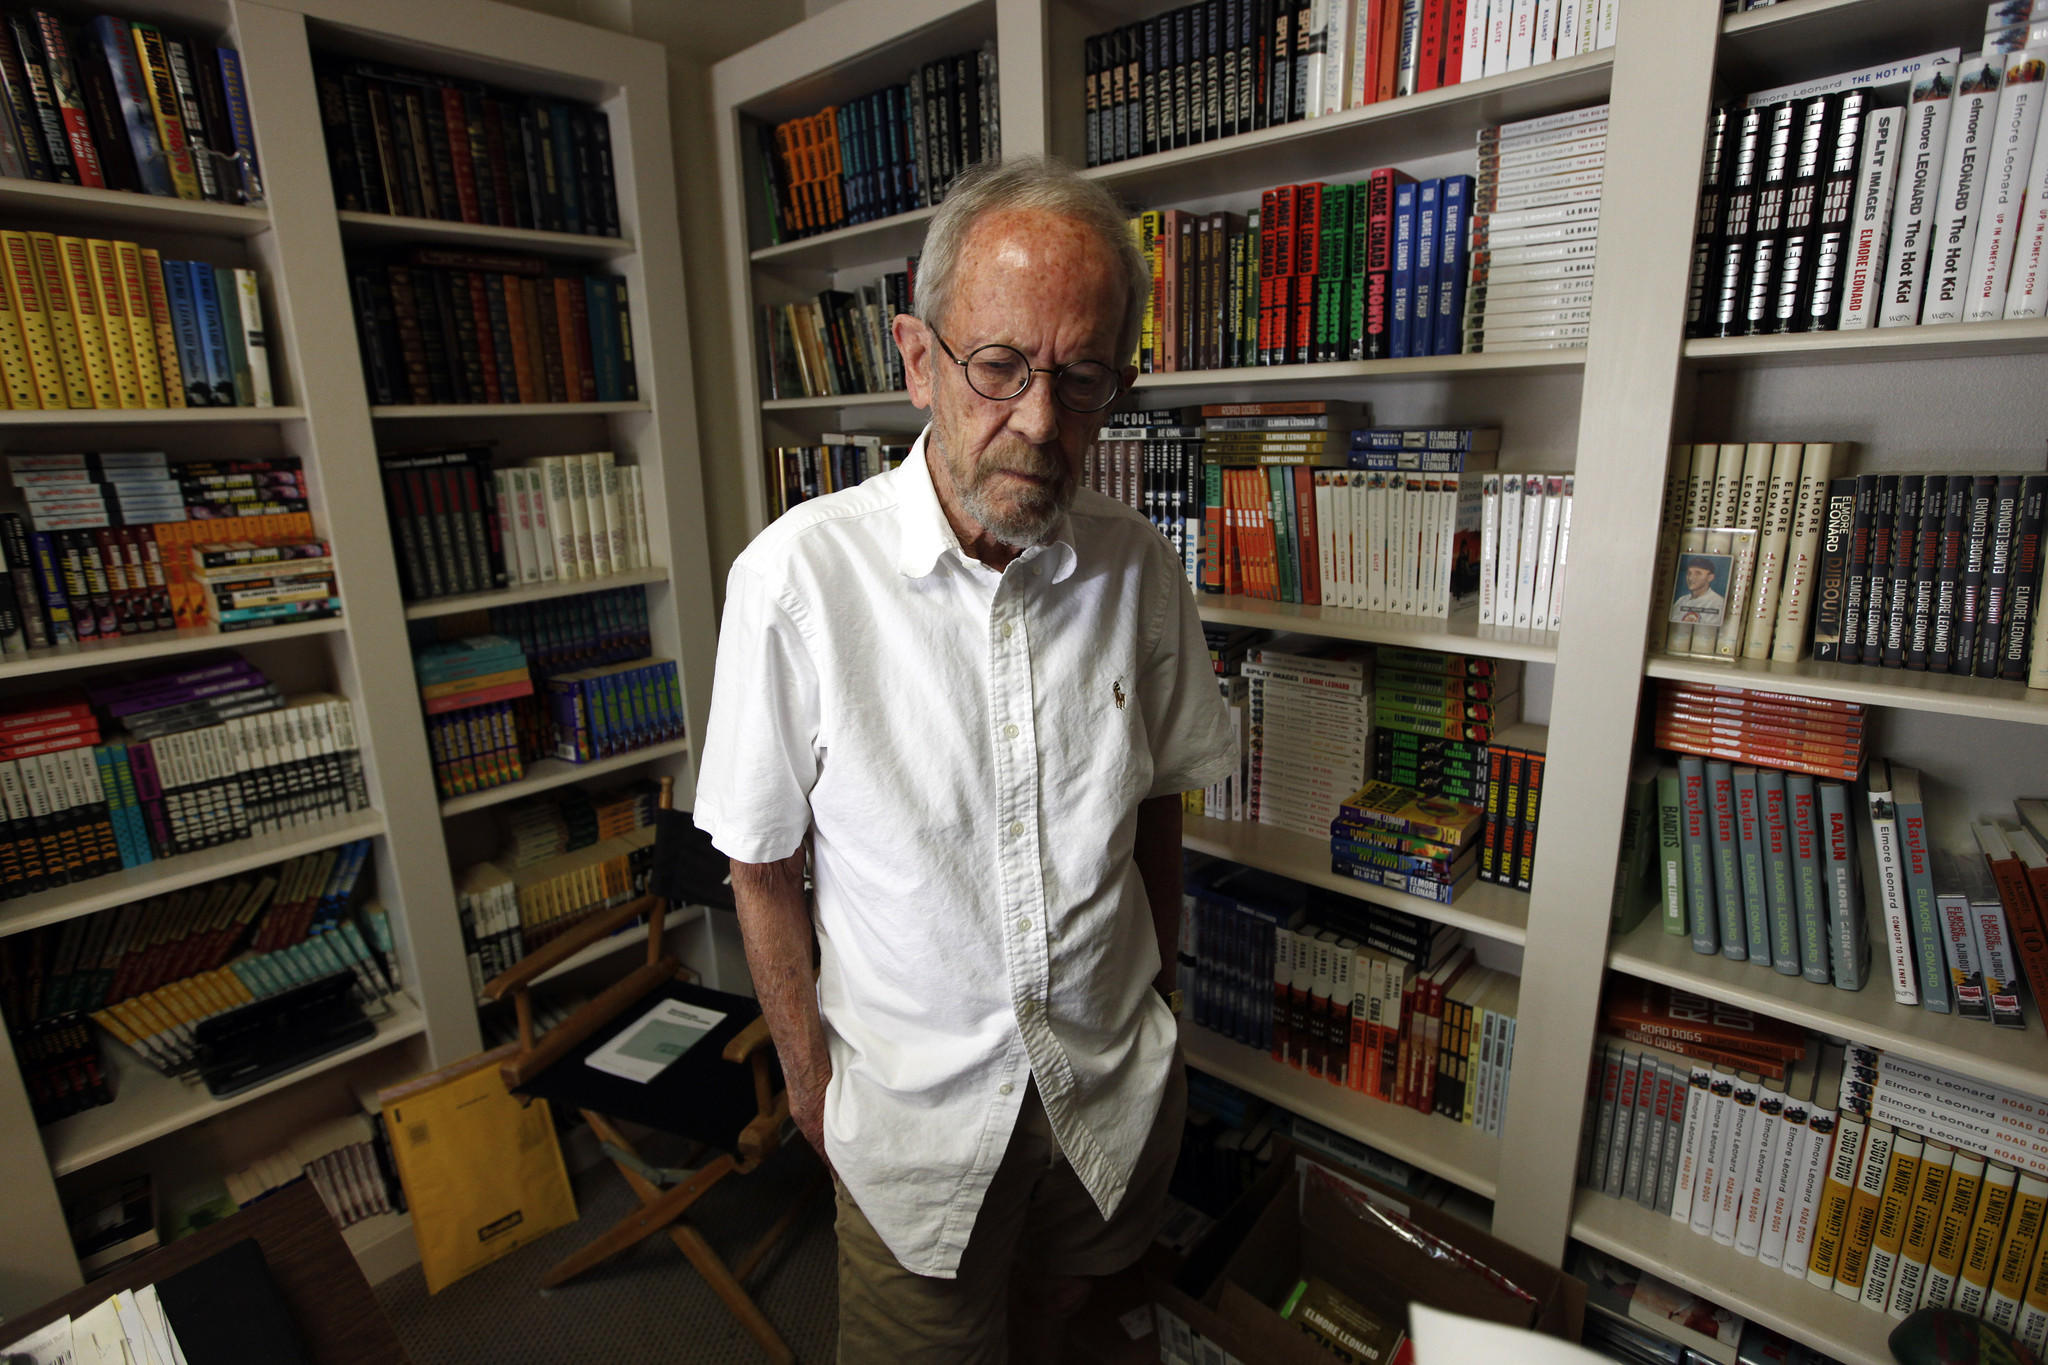 Elmore Leonard, at home in 2012, died in 2013. Books and furniture from his home are being sold at an estate sale.